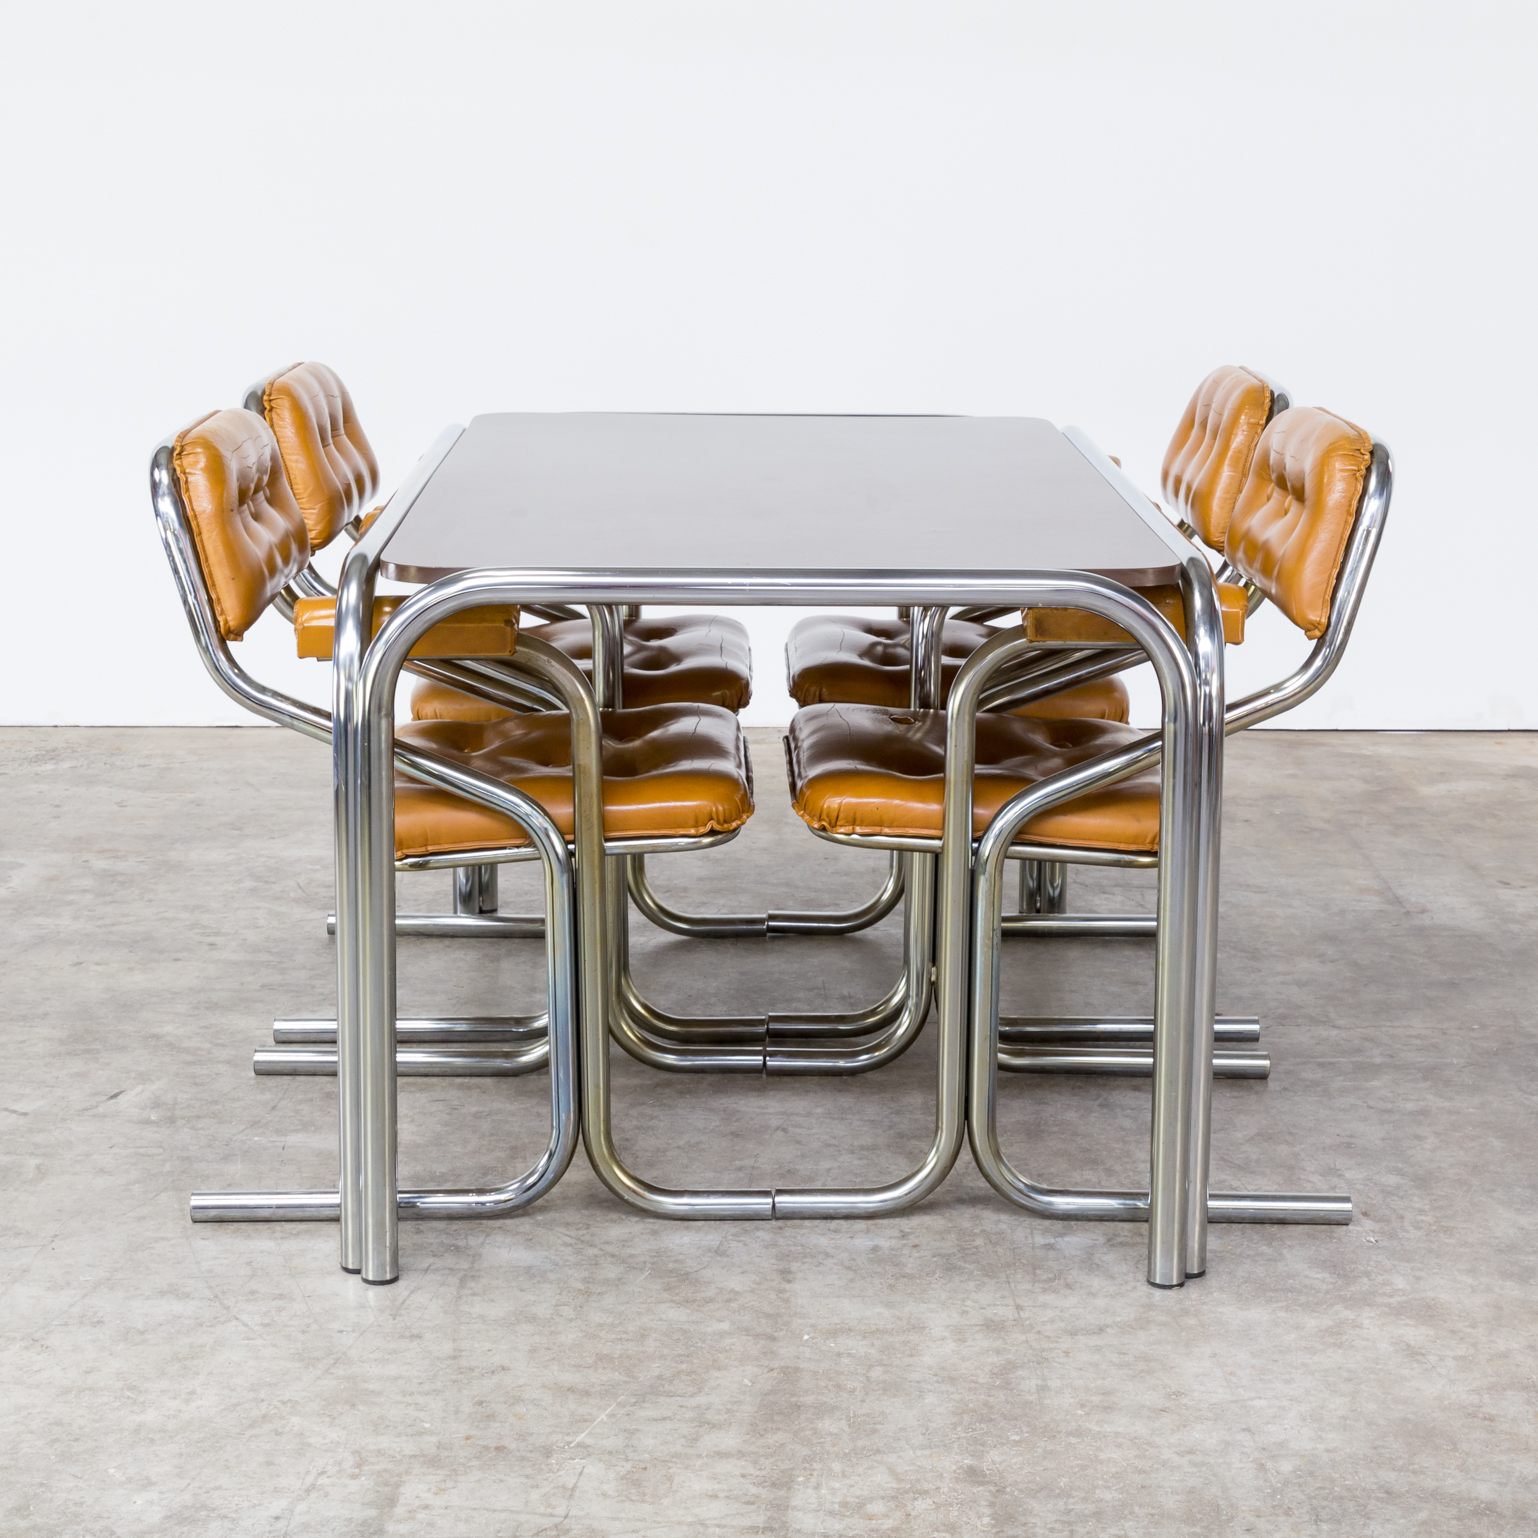 TEst tube frame table dining room set chairs vintage retro